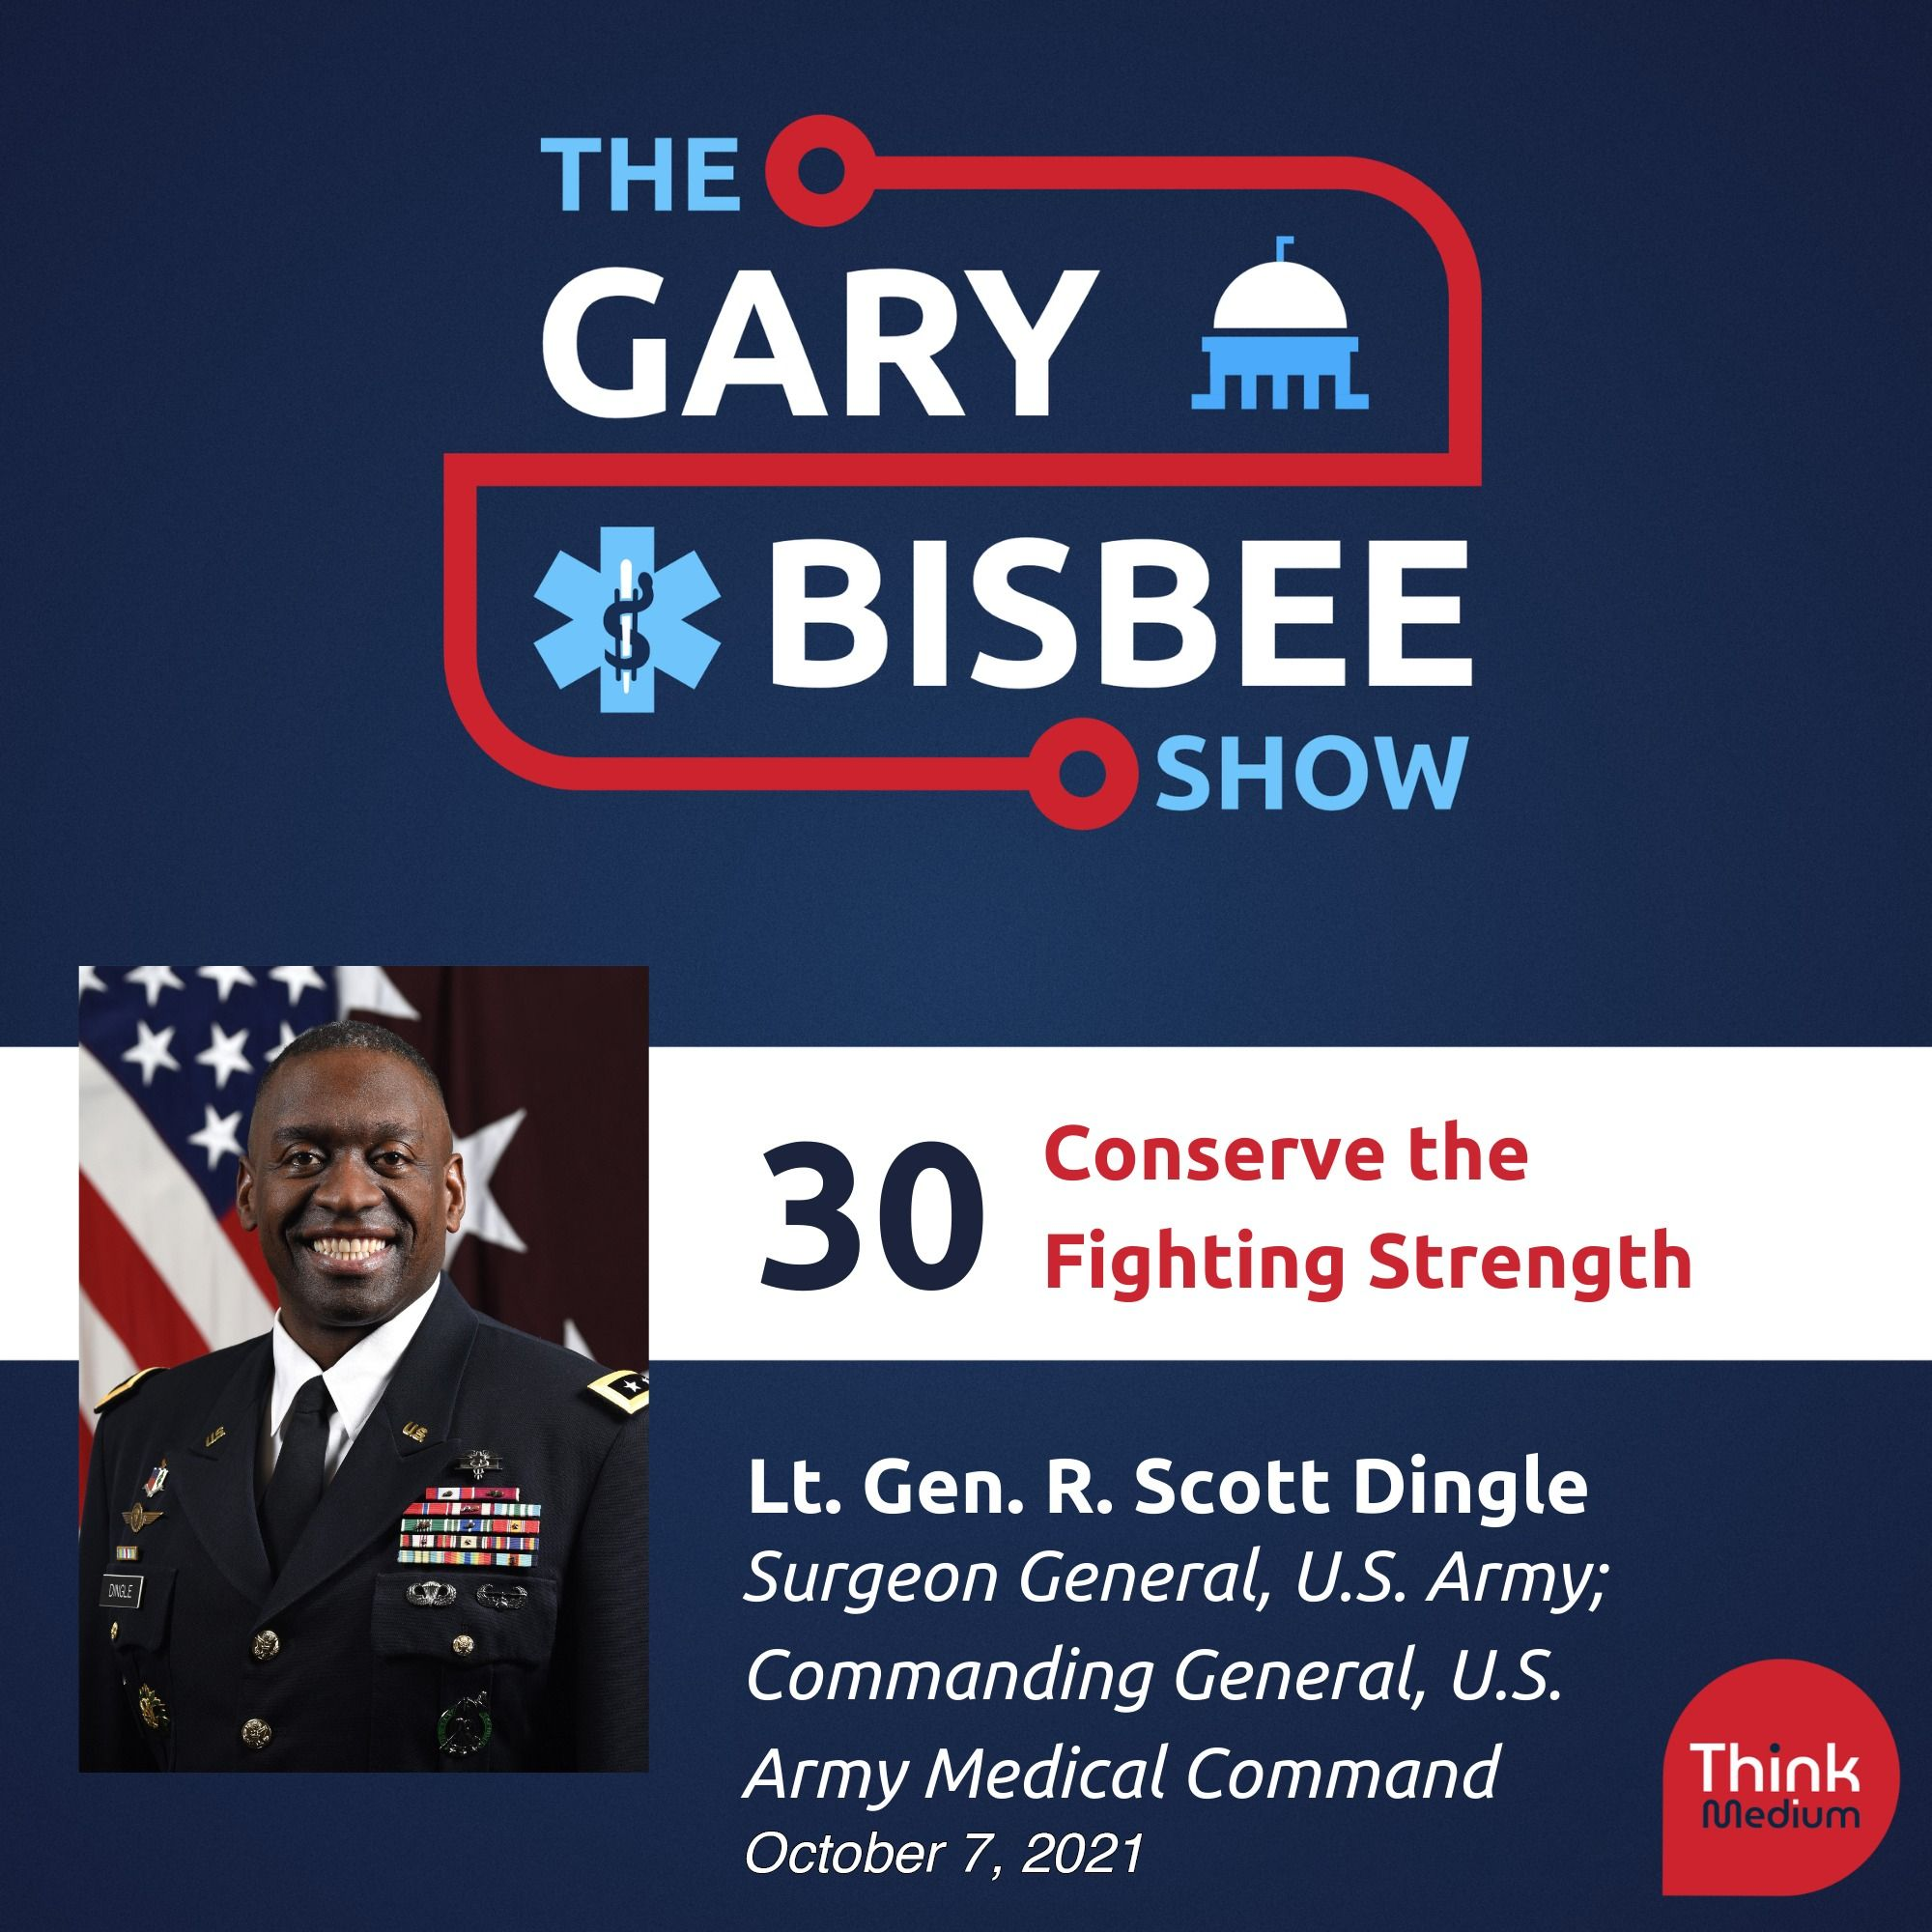 30: Conserve the Fighting Strength with Lt. Gen. R. Scott Dingle, Surgeon General, U.S. Army; Commanding General, U.S. Army Medical Command